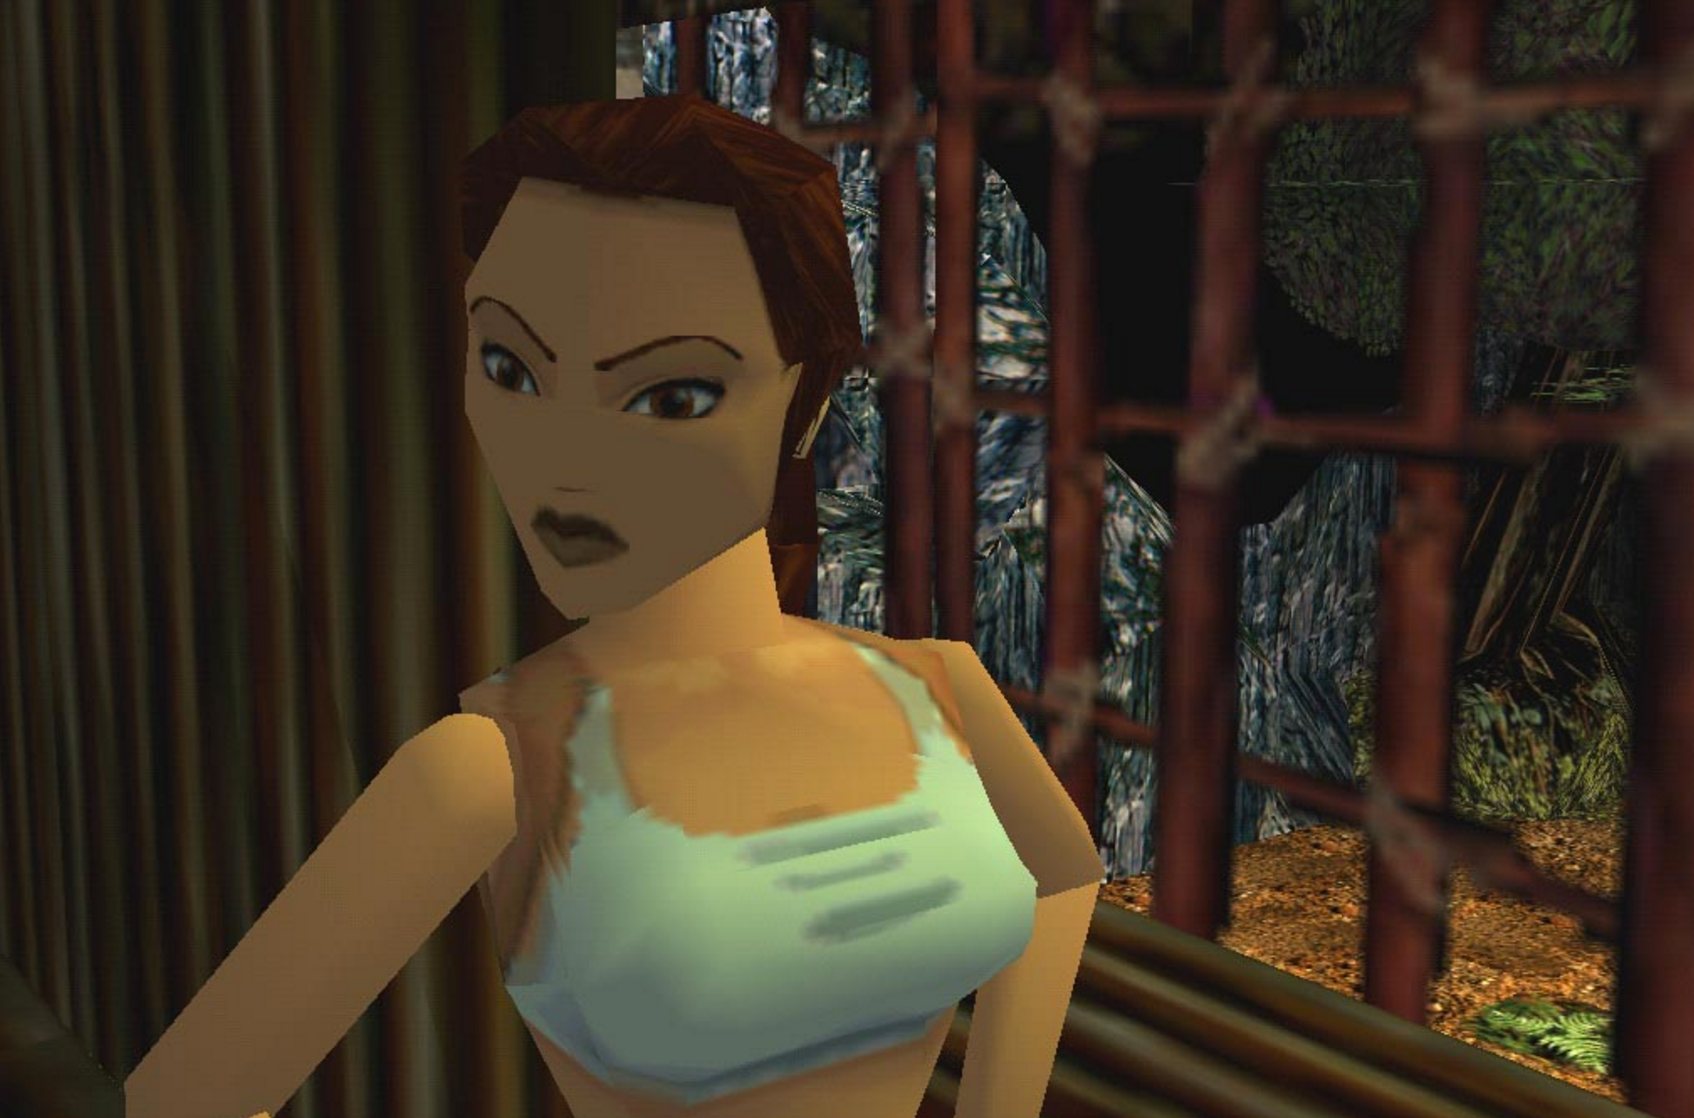 Oversexualized video game characters